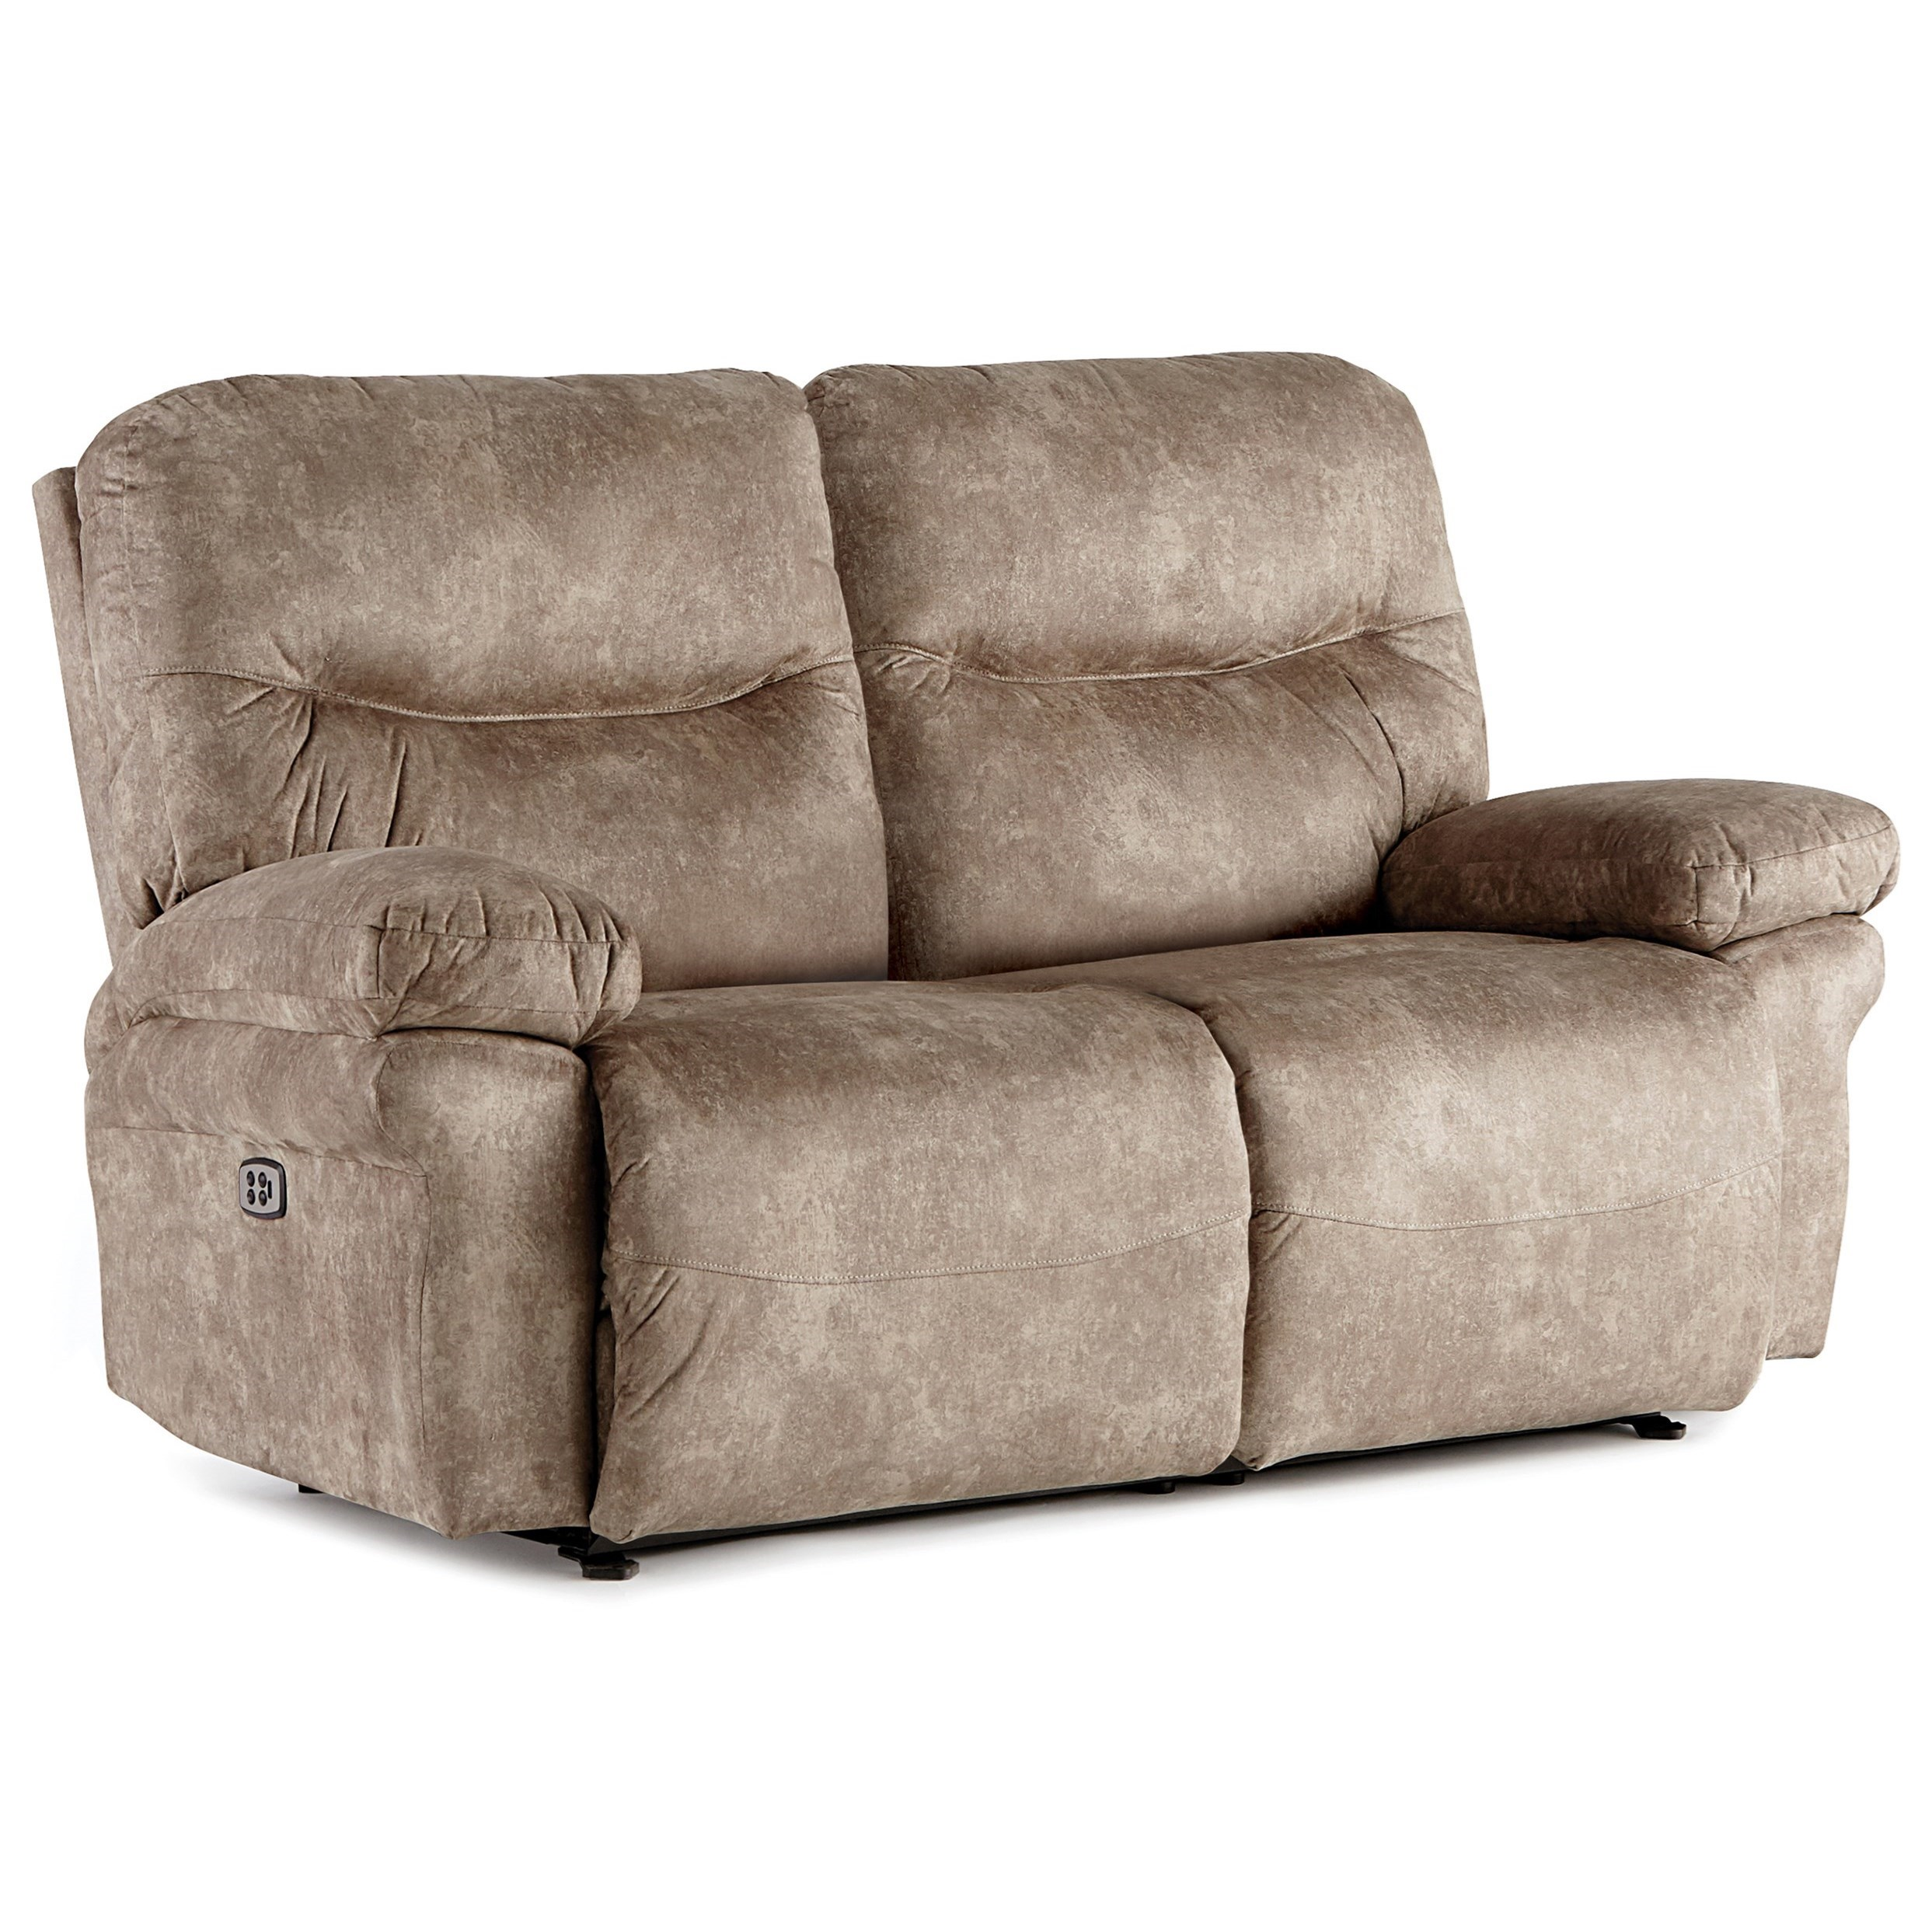 Leya Manual Space Saver Reclining Loveseat by Best Home Furnishings at Baer's Furniture